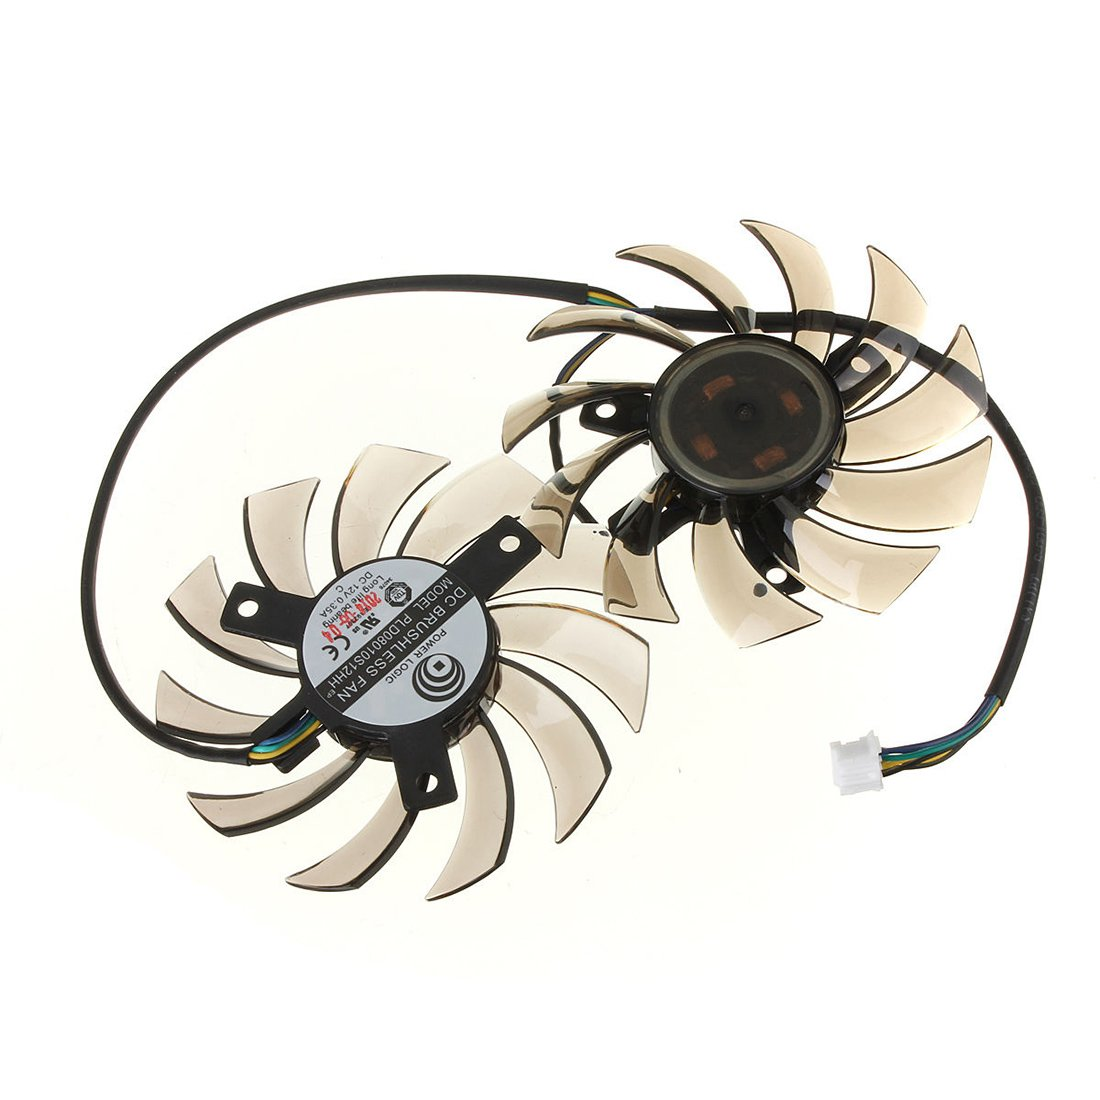 Graphics card Dual fans - TOOGOO(R) 75MM Graphics card Dual fans for MST GTX 460 580 R6870 R6950